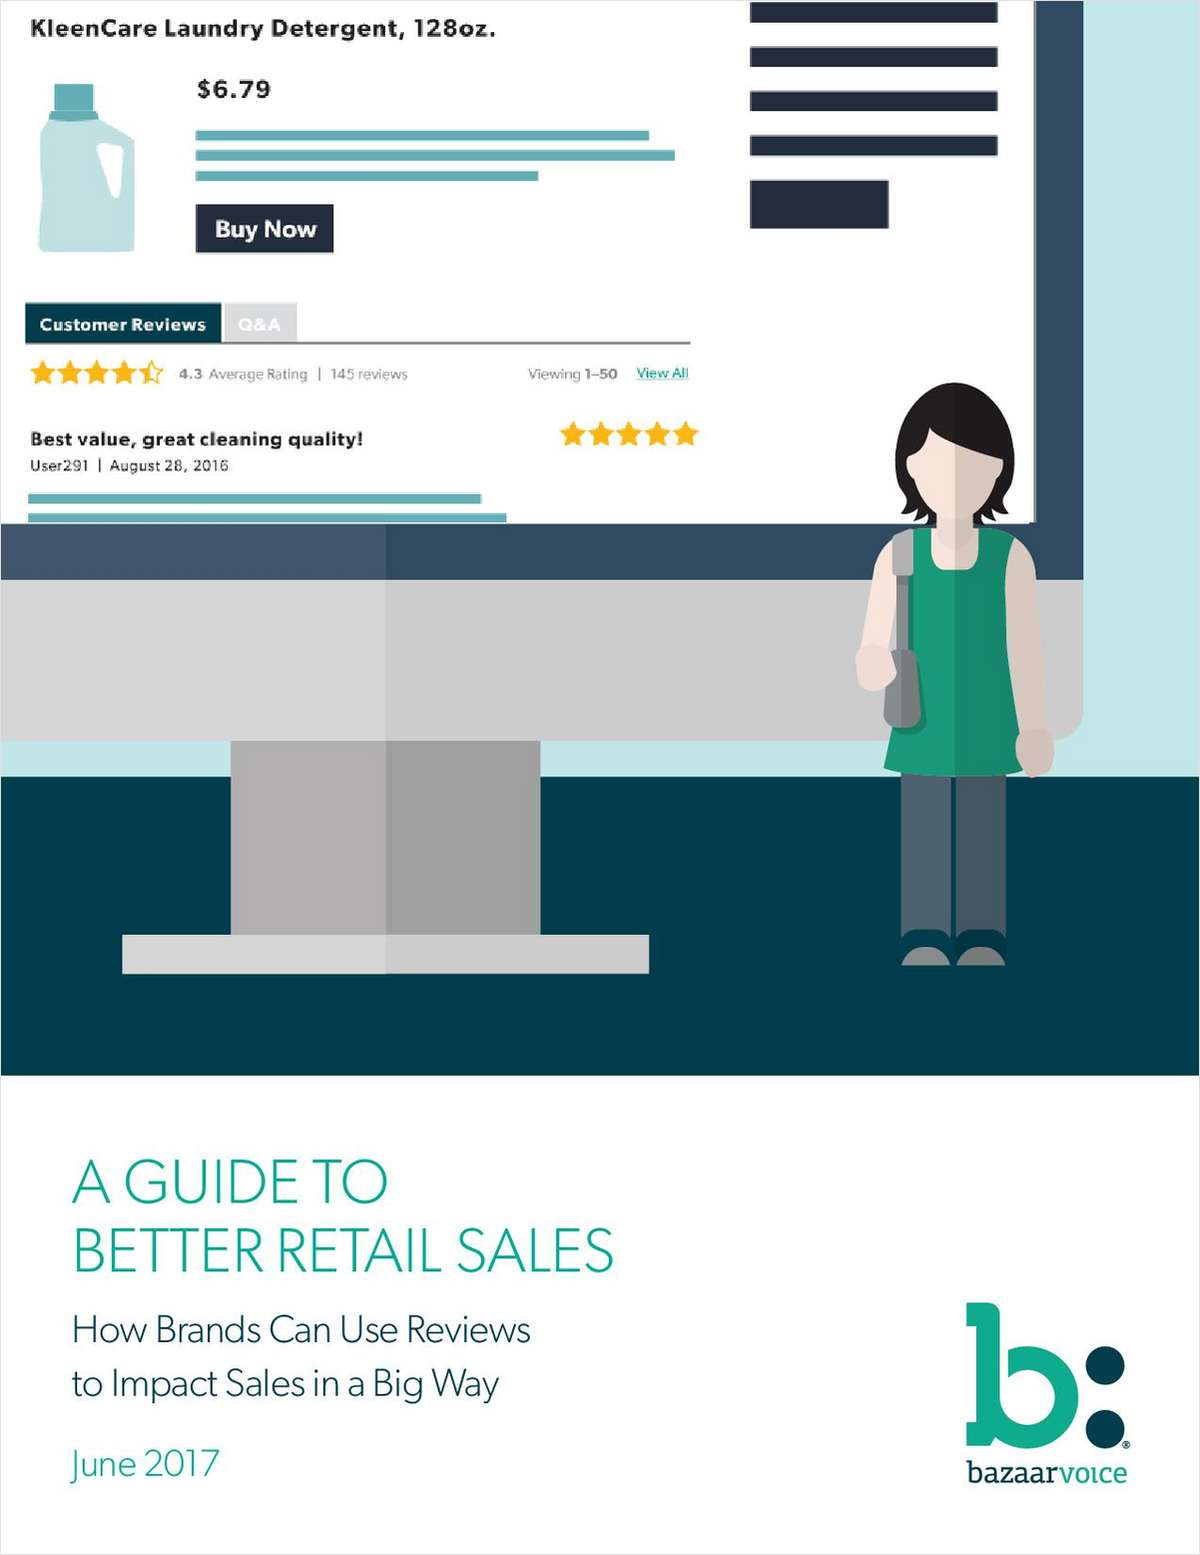 A Guide to Better Retail Sales: How Brands Can Use Reviews to Impact Sales